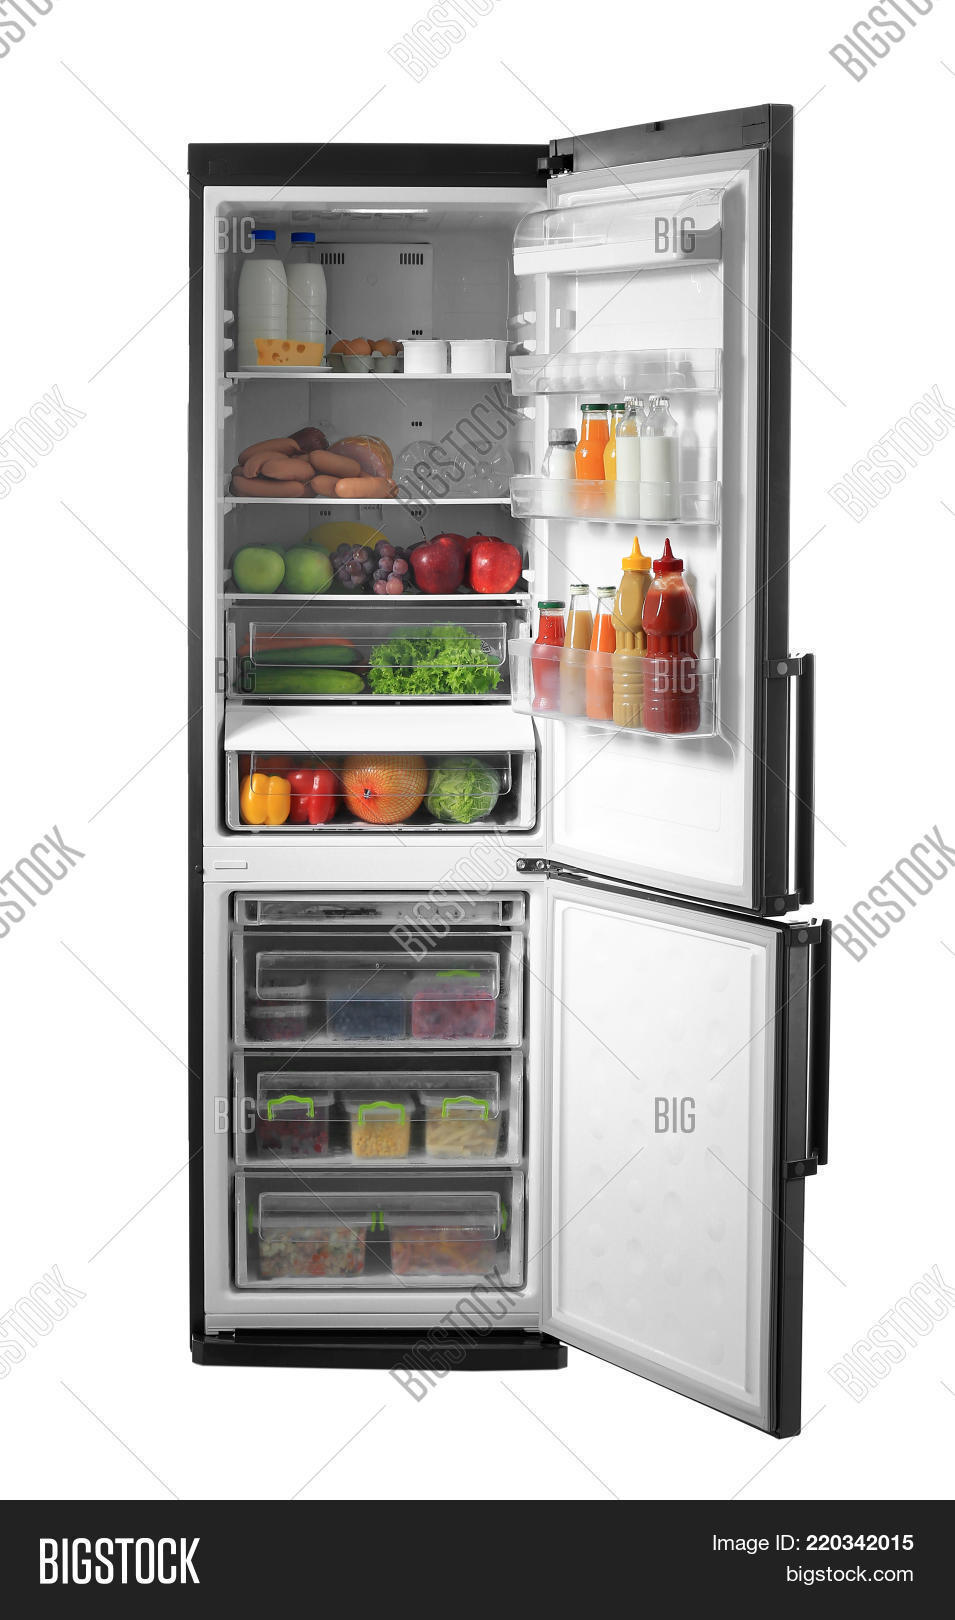 appliance,assortment,background,cold,cook,cool,dairy,different,domestic,door,drink,eat,electric,food,freeze,freezer,freshness,fridge,frost,fruits,full,healthy,home,household,icebox,isolated,keep,kitchen,light,meat,modern,object,open,organize,products,refrigeration,refrigerator,safety,sausage,shelf,shelves,storage,tasty,various,vegetables,view,vitamins,white